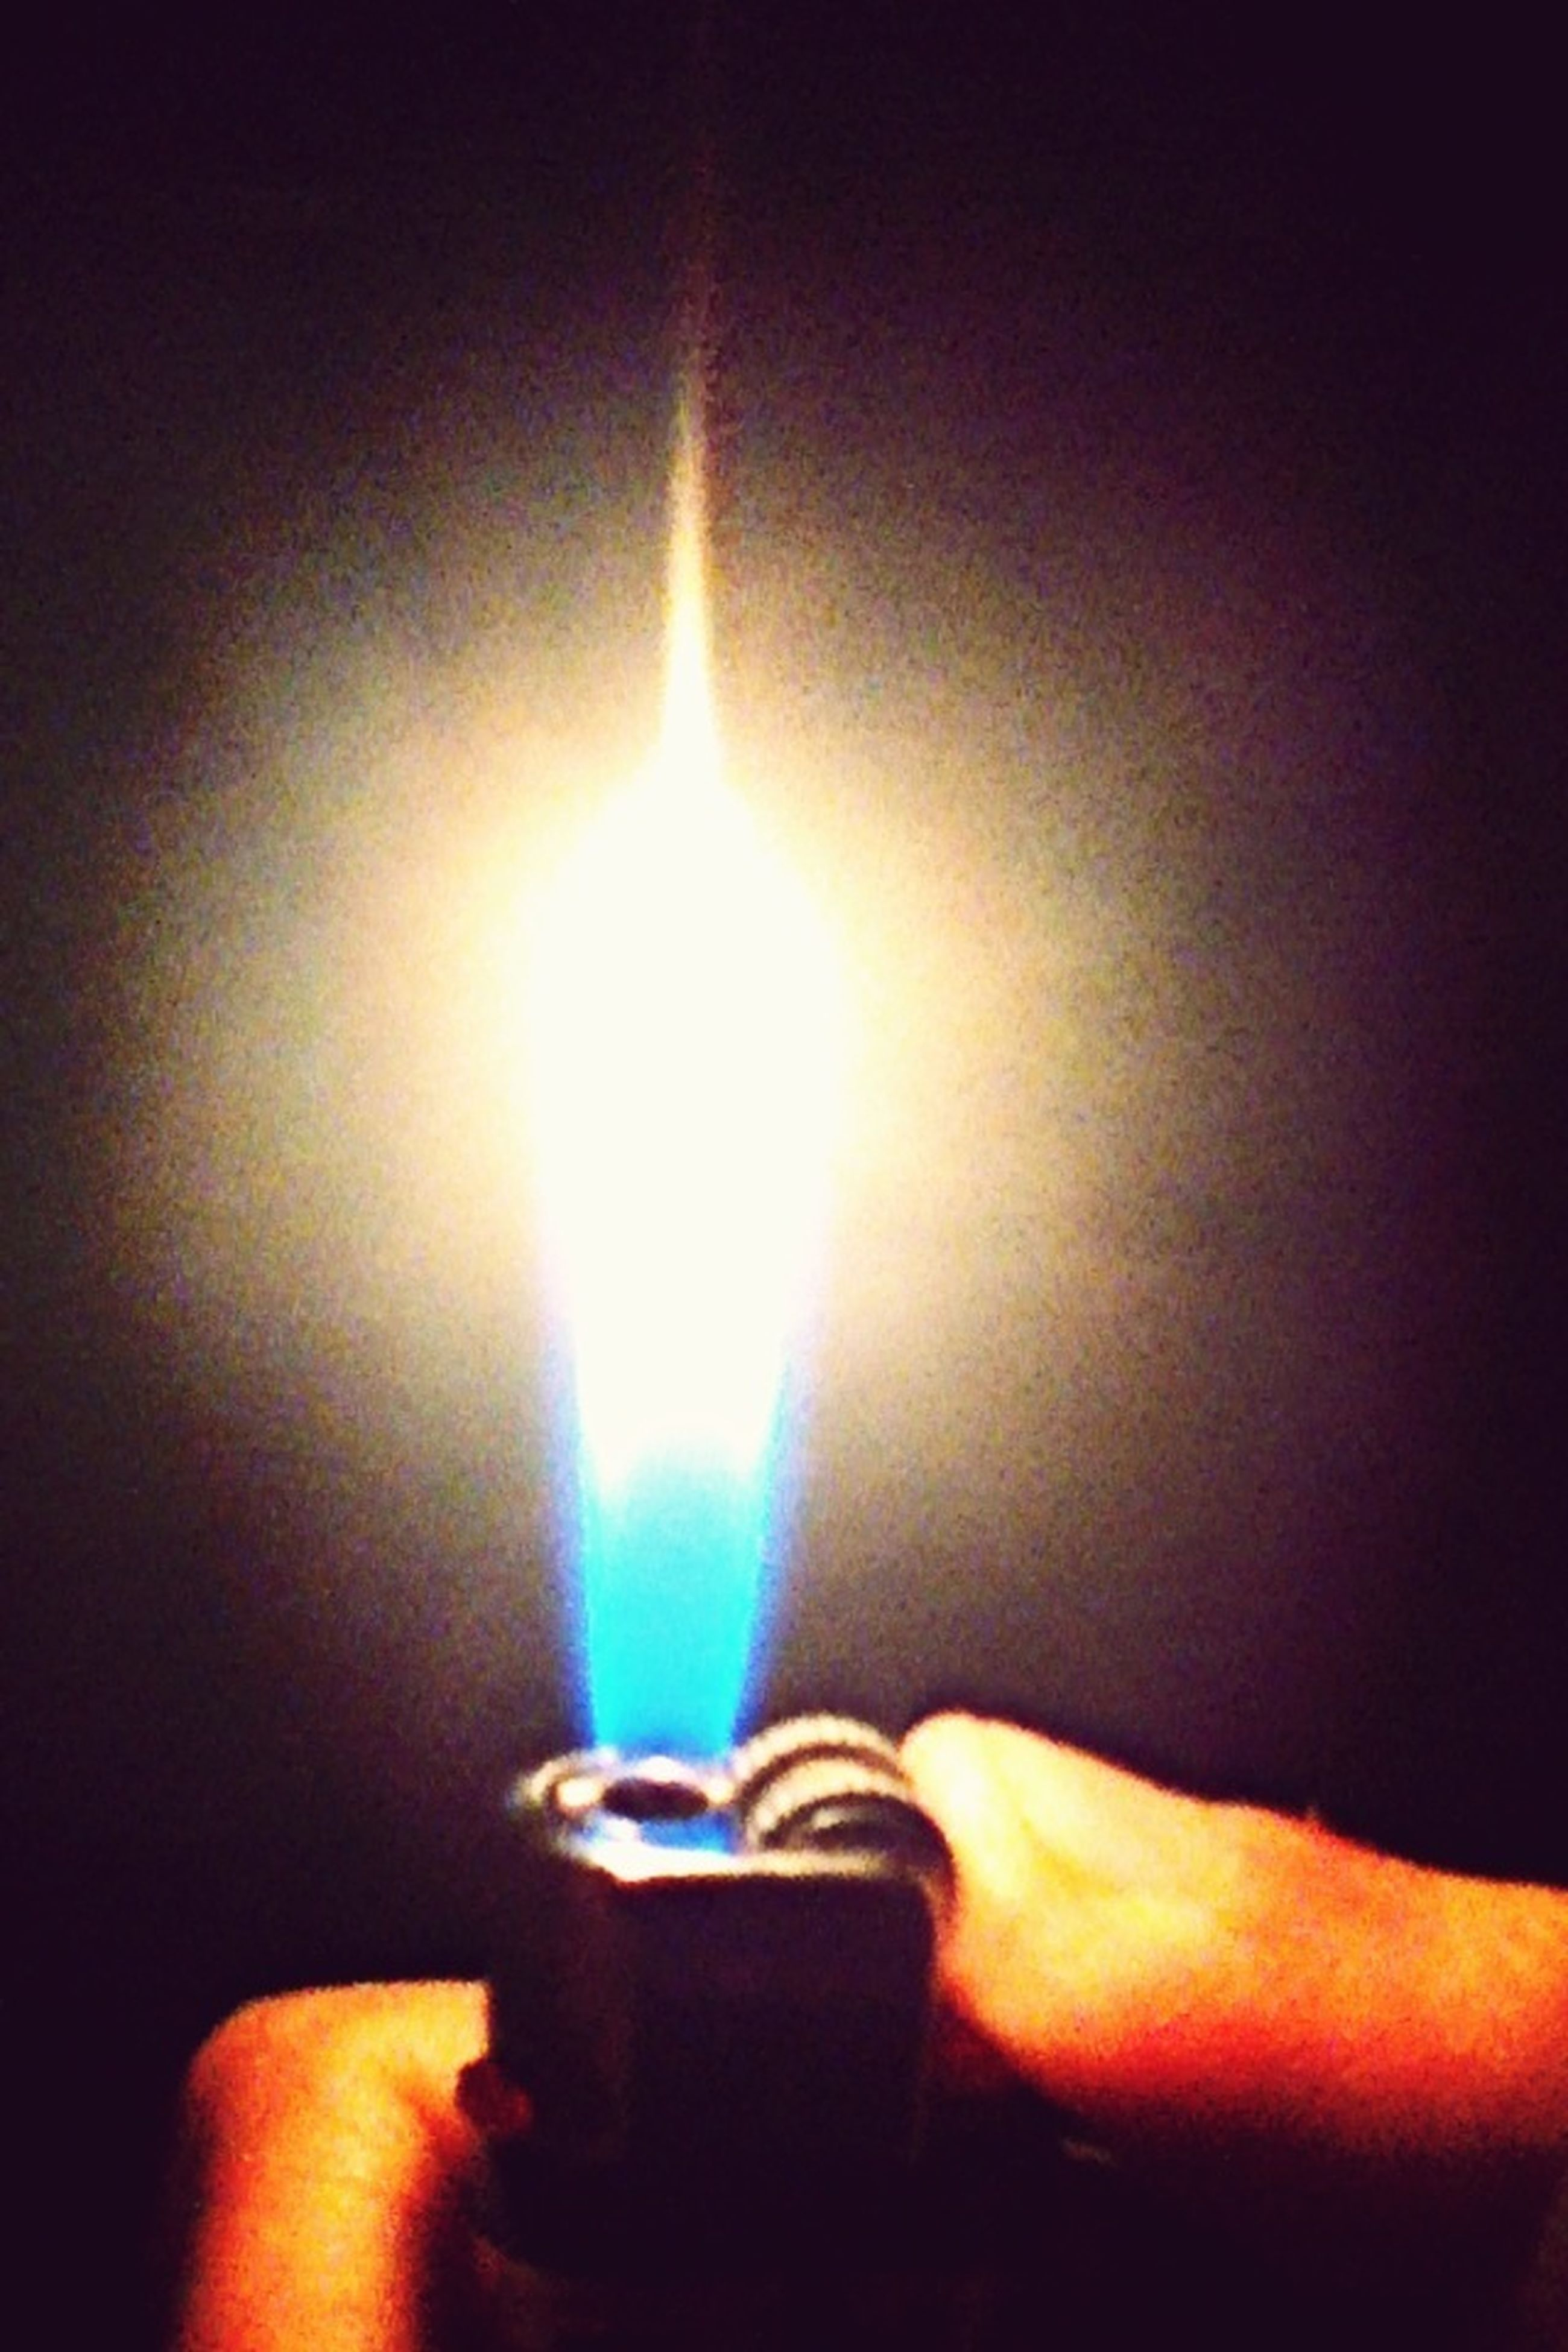 flame, burning, heat - temperature, indoors, candle, person, glowing, fire - natural phenomenon, close-up, part of, lit, illuminated, human finger, holding, cropped, fire, candlelight